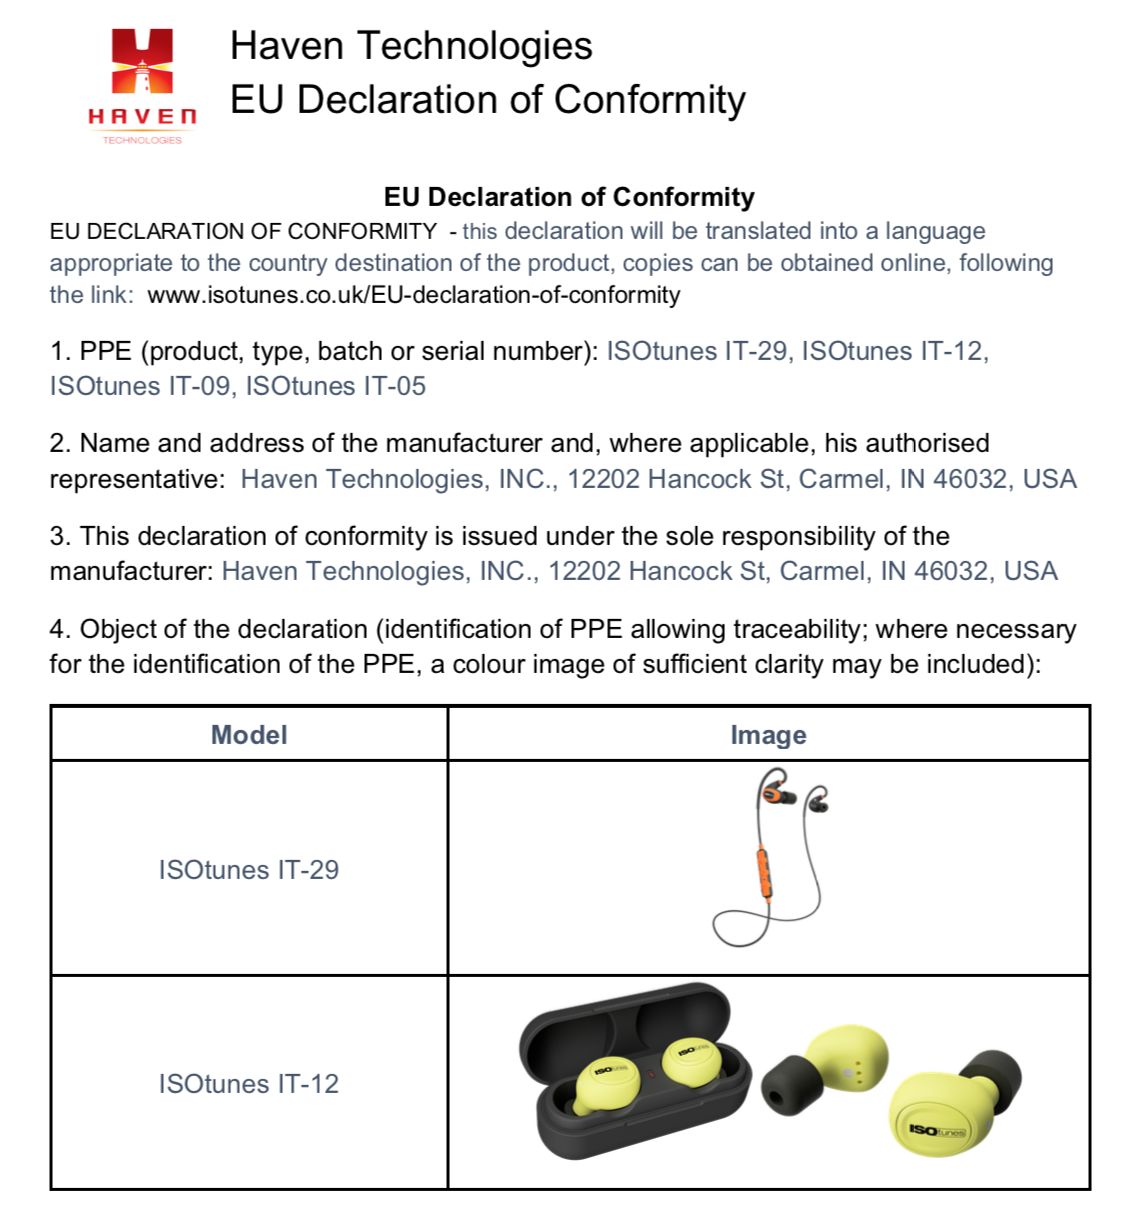 EU Declaration of Conformity Page 1